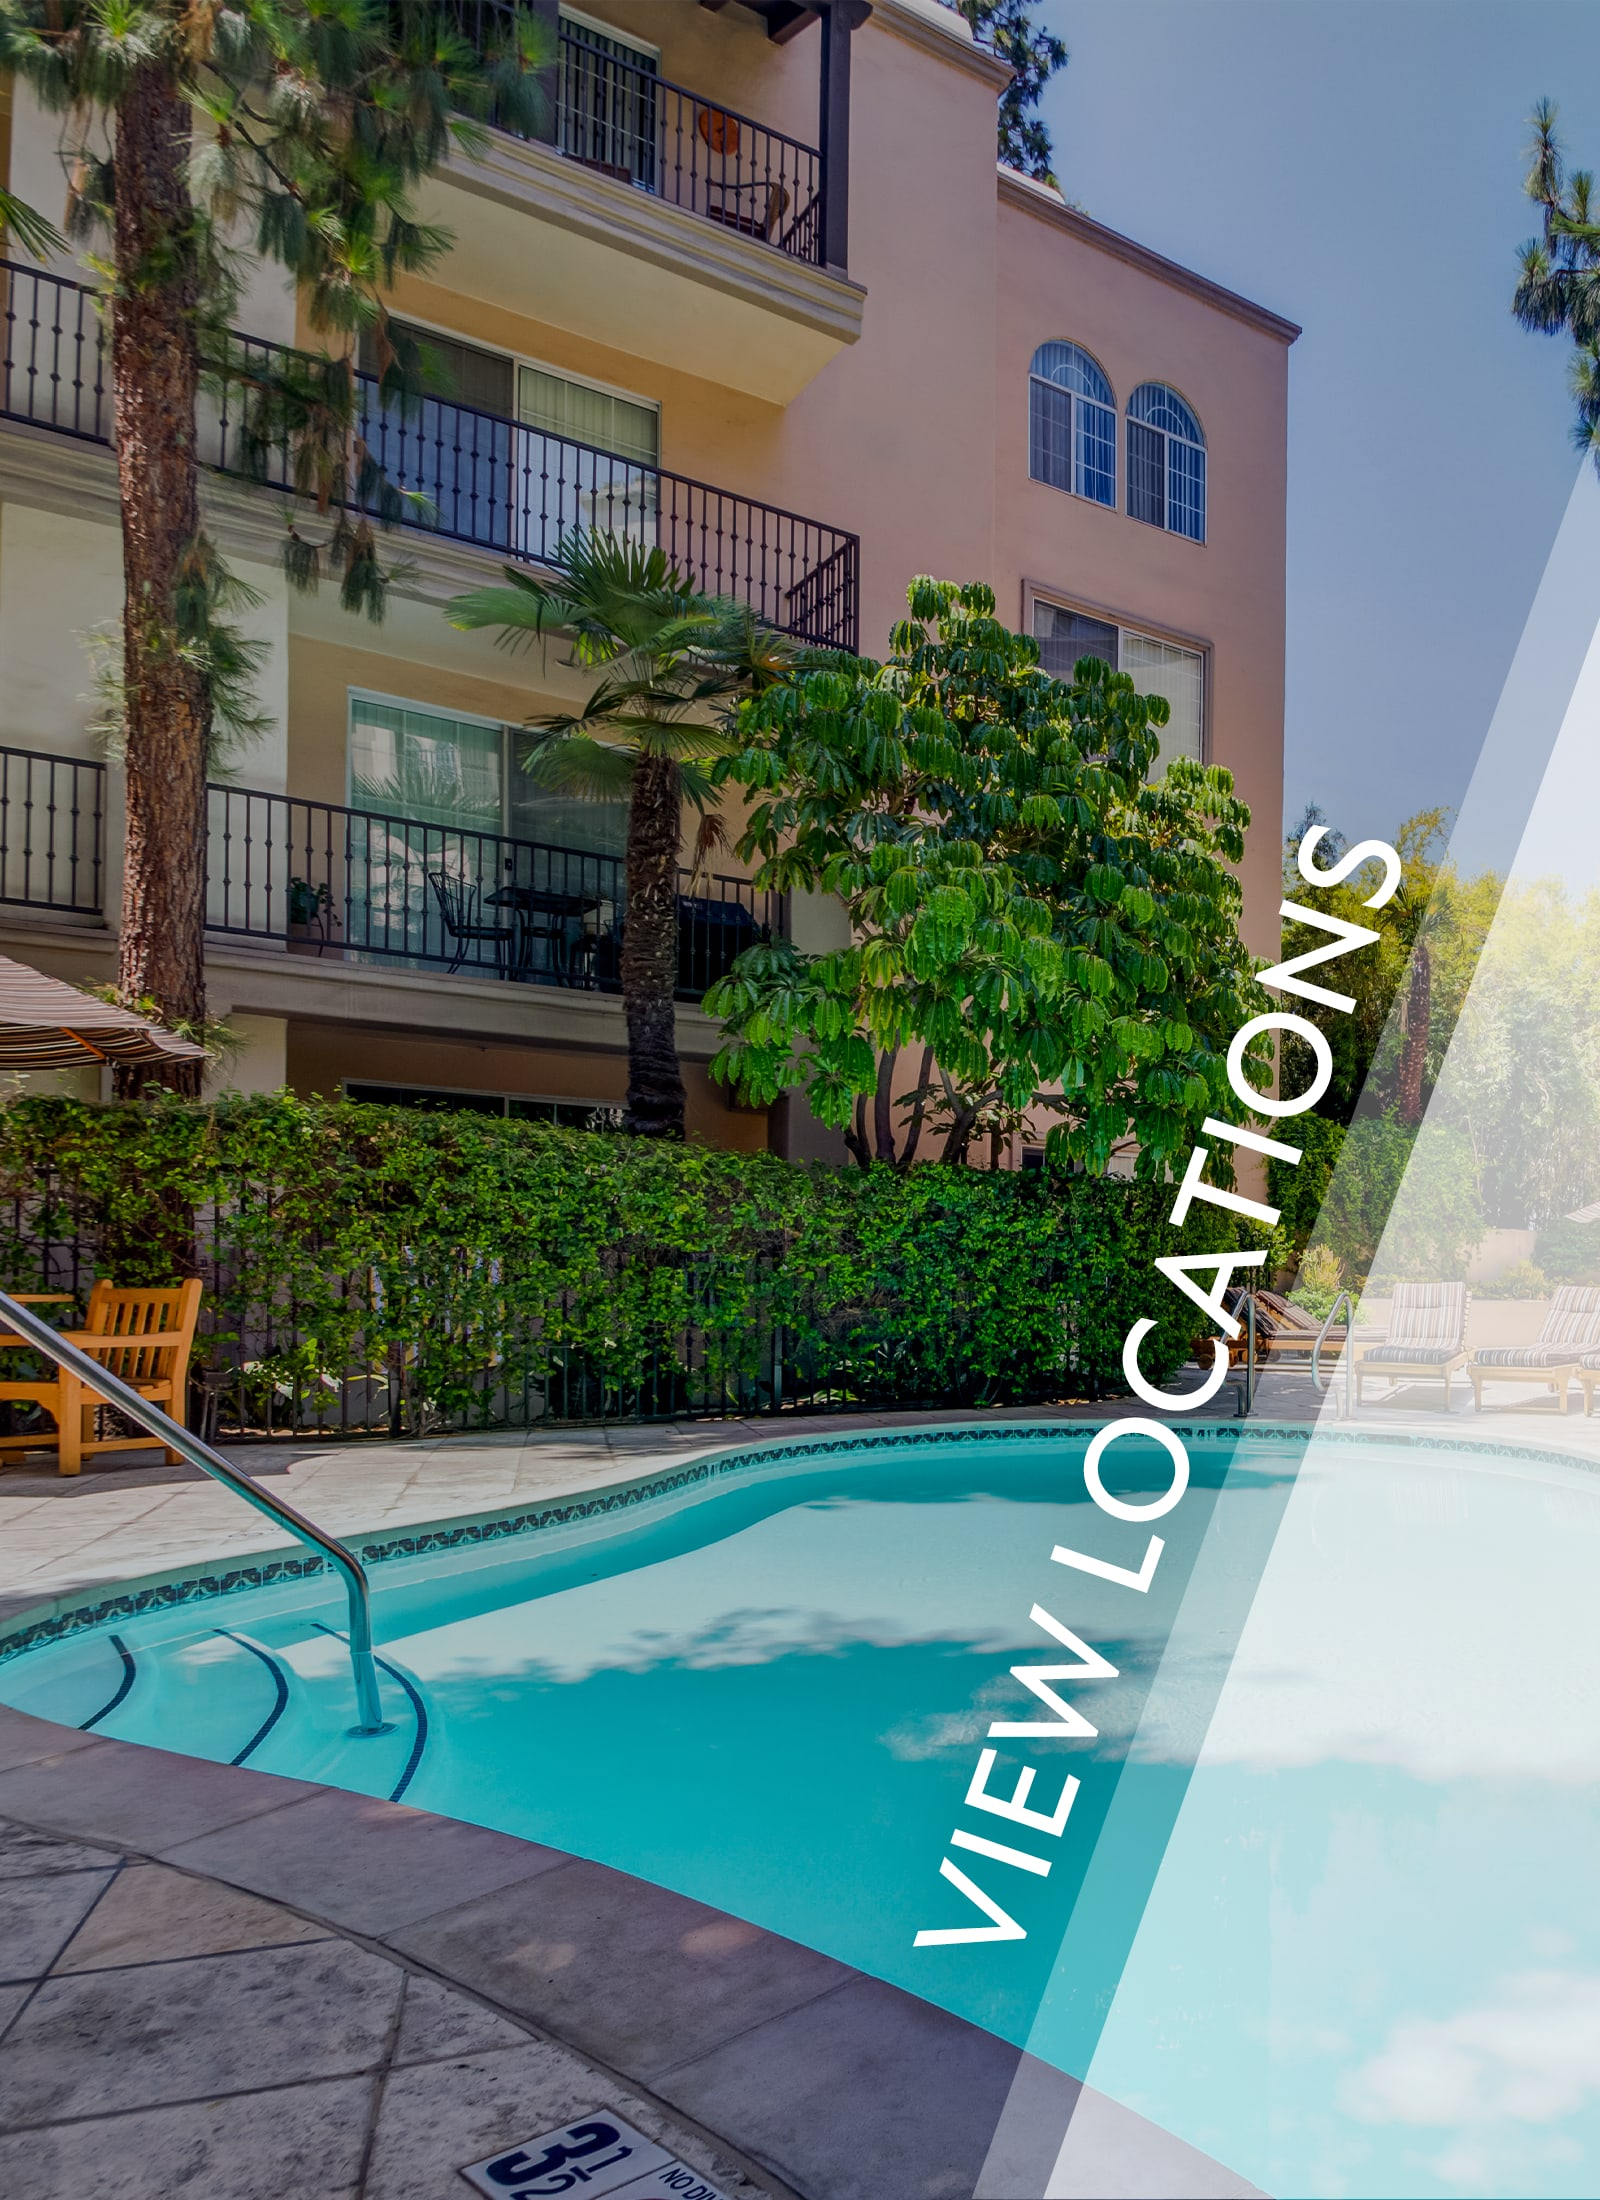 Link to luxury apartment communities in Los Angeles by E&S Ring Management Corporation in Los Angeles, California